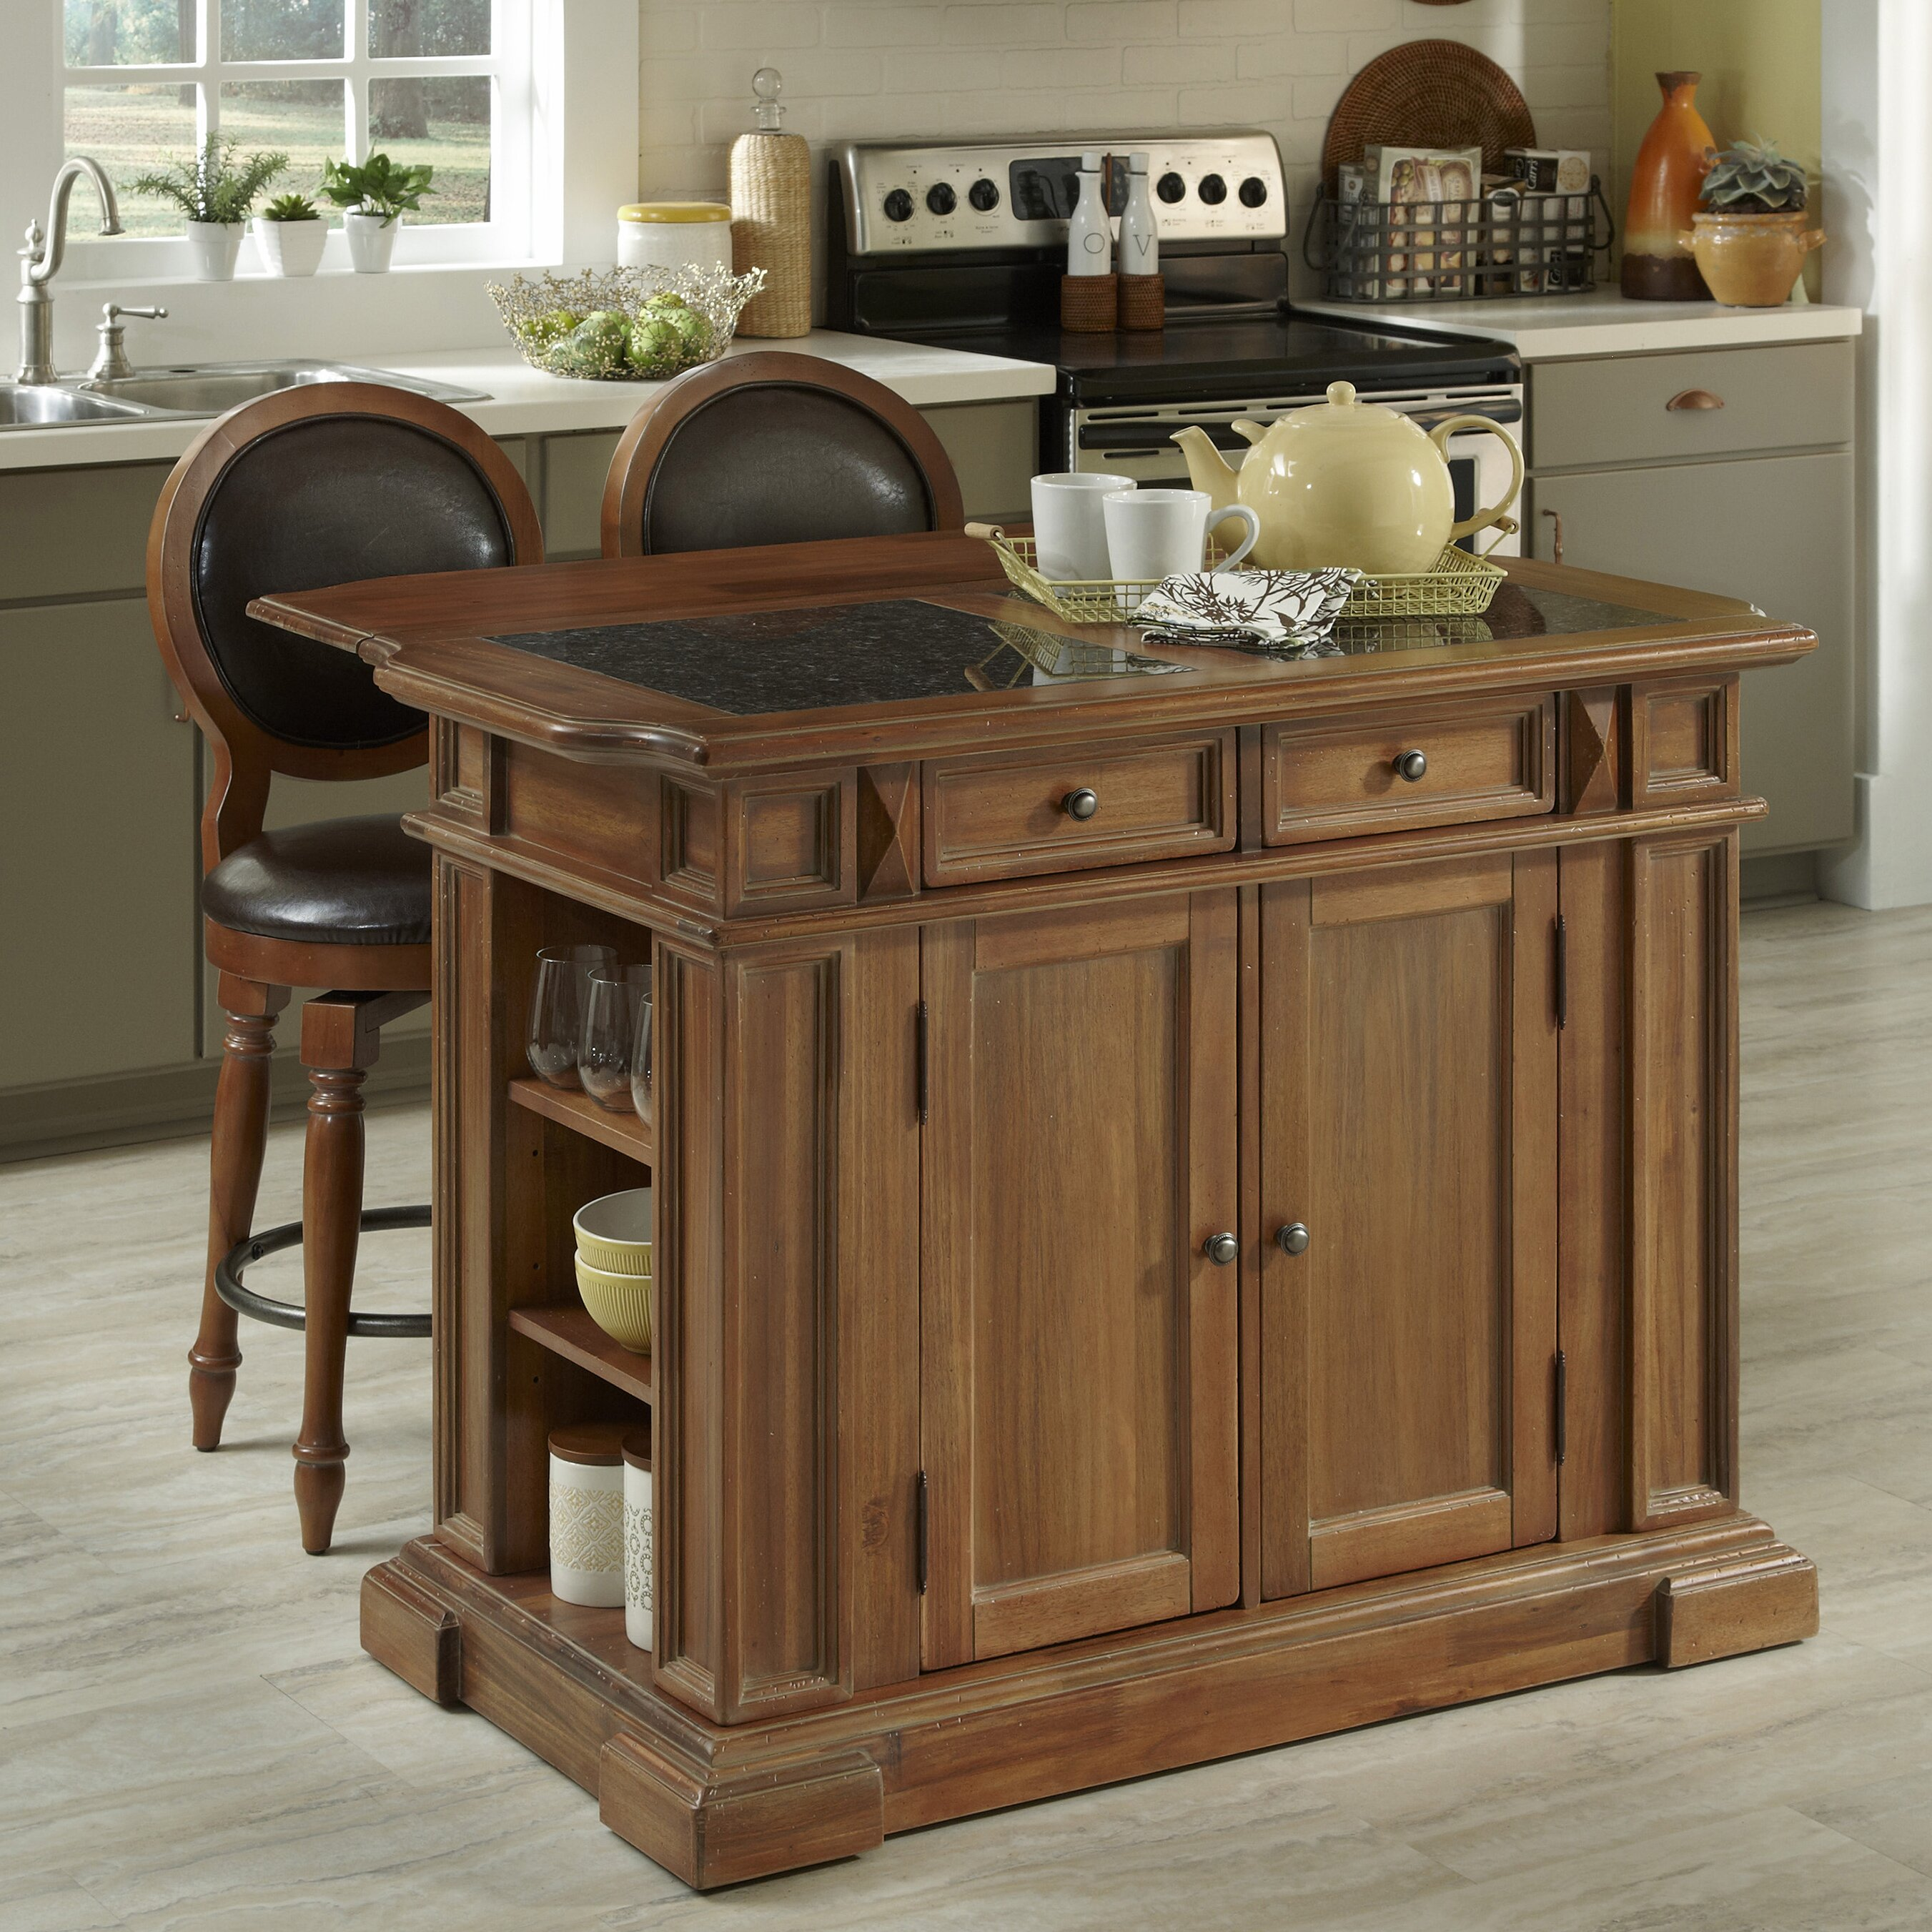 home styles americana kitchen island] - 100 images - innovative